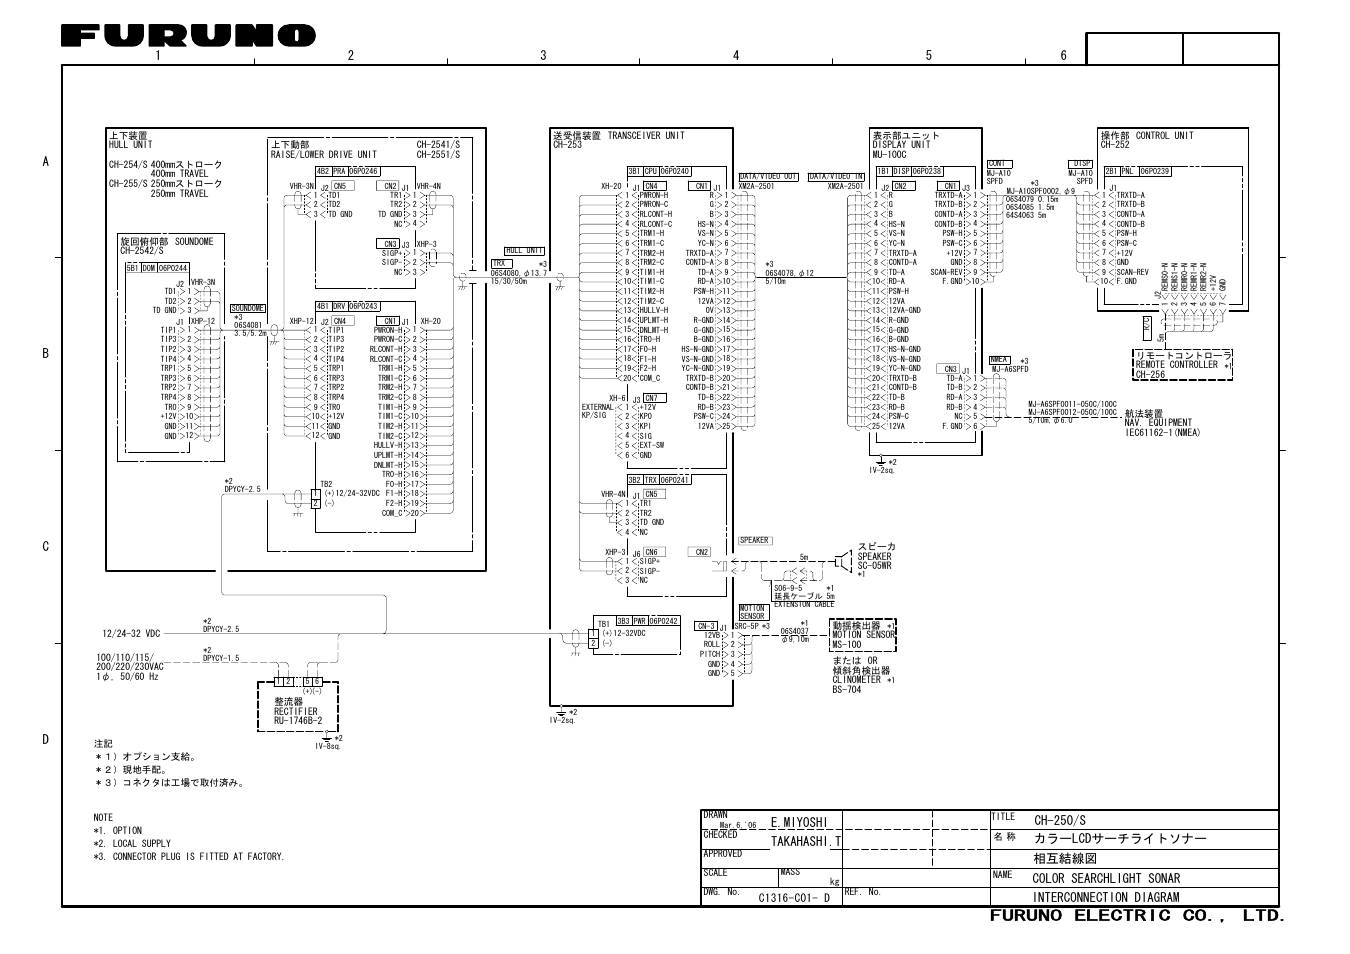 Interconnection Diagrams Furuno Electric Co Ltd